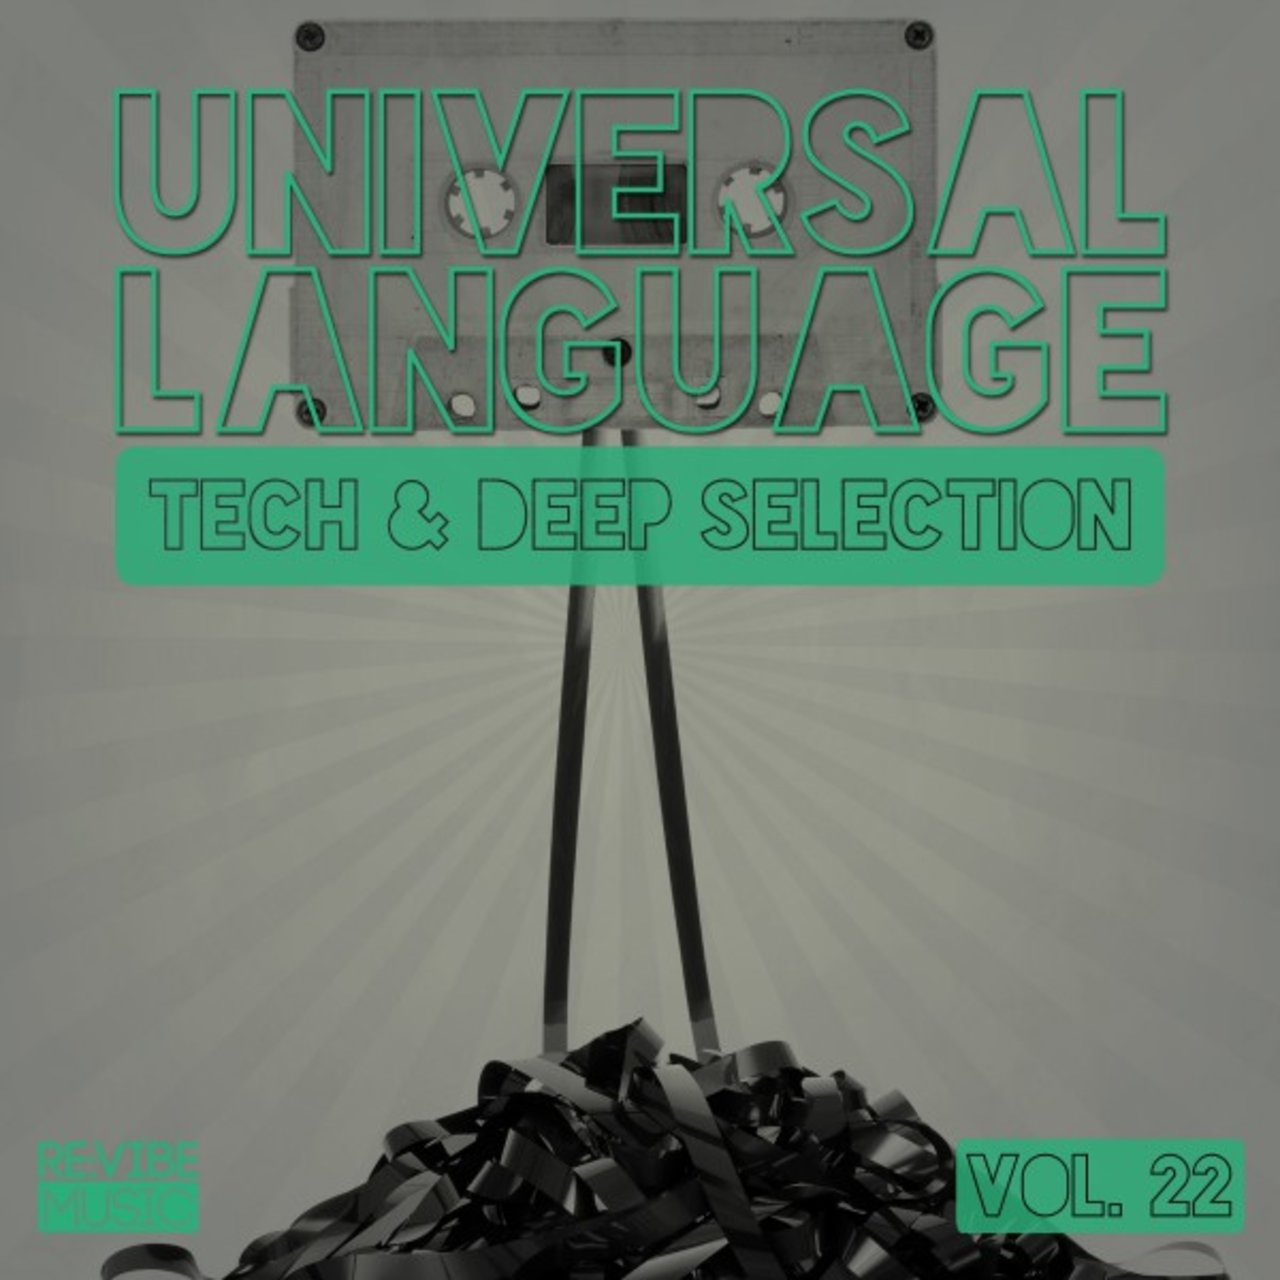 Universal Language, Vol. 22 - Tech & Deep Selection